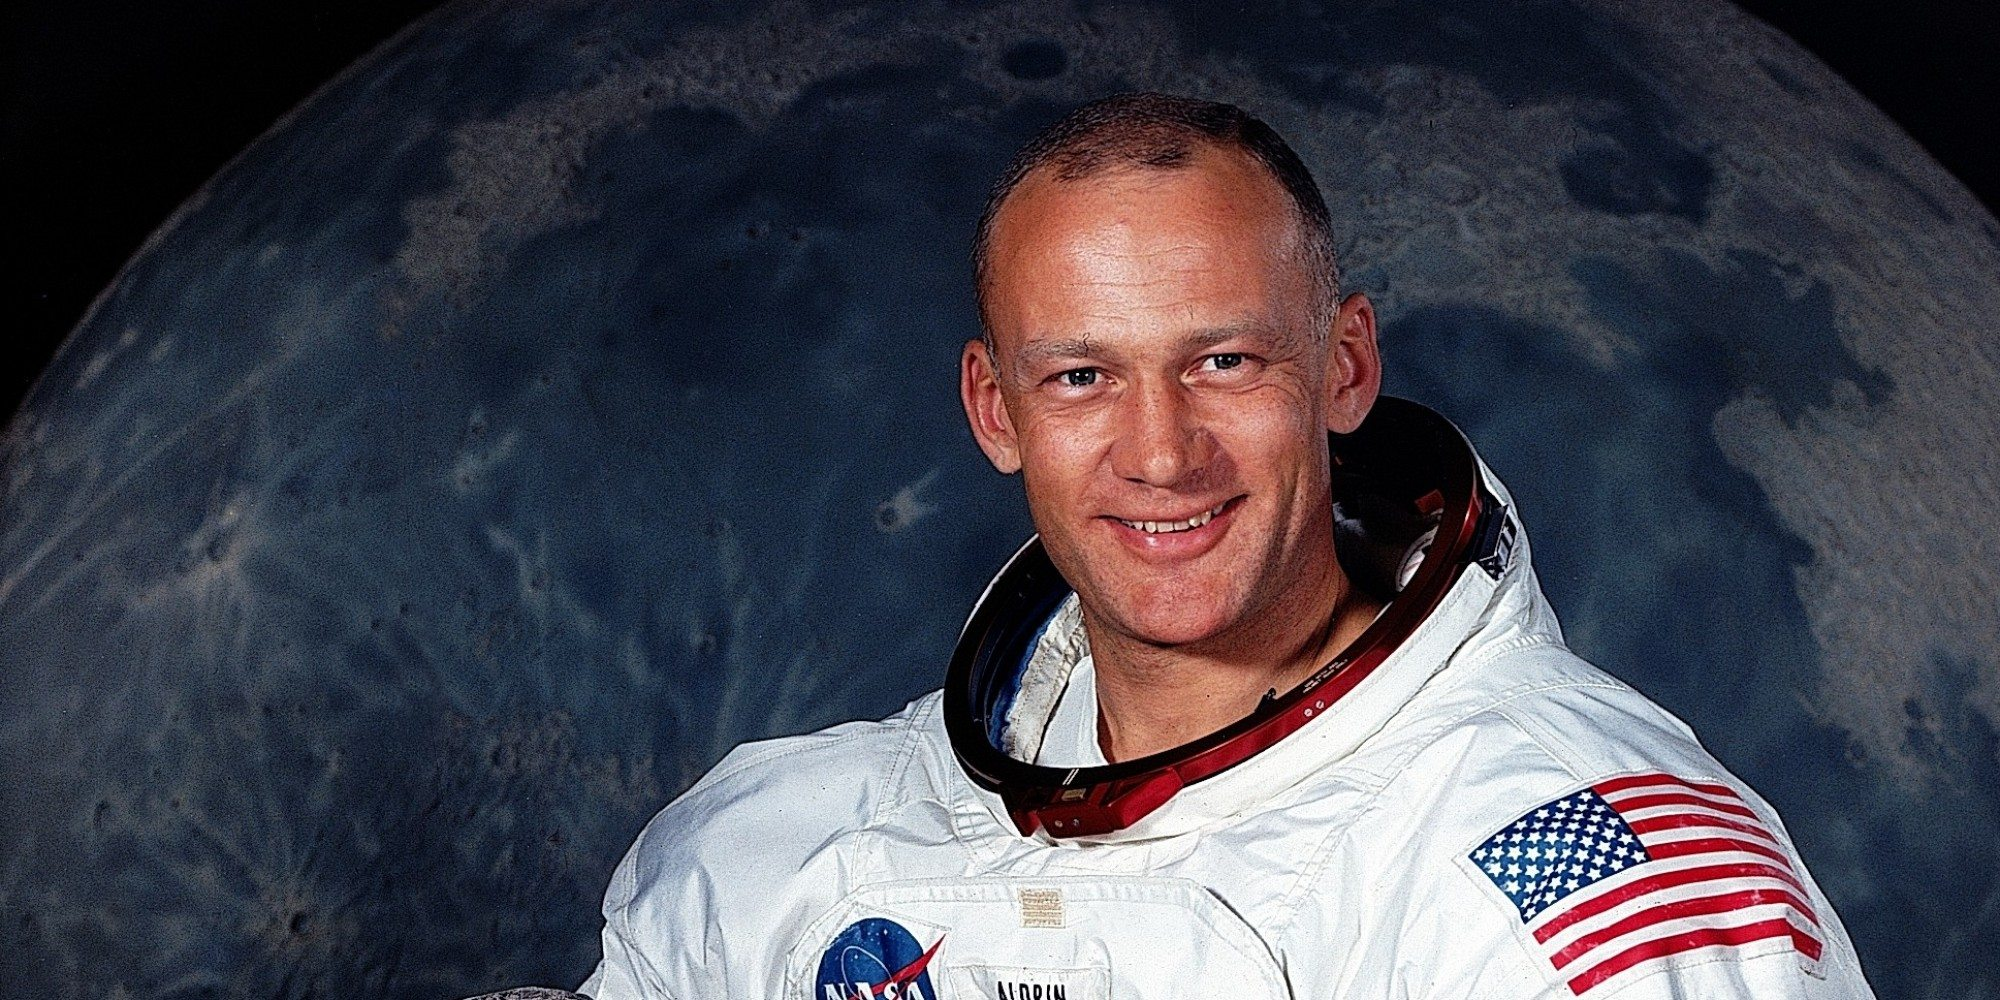 US Astronaut Buzz Aldrin - Facts About